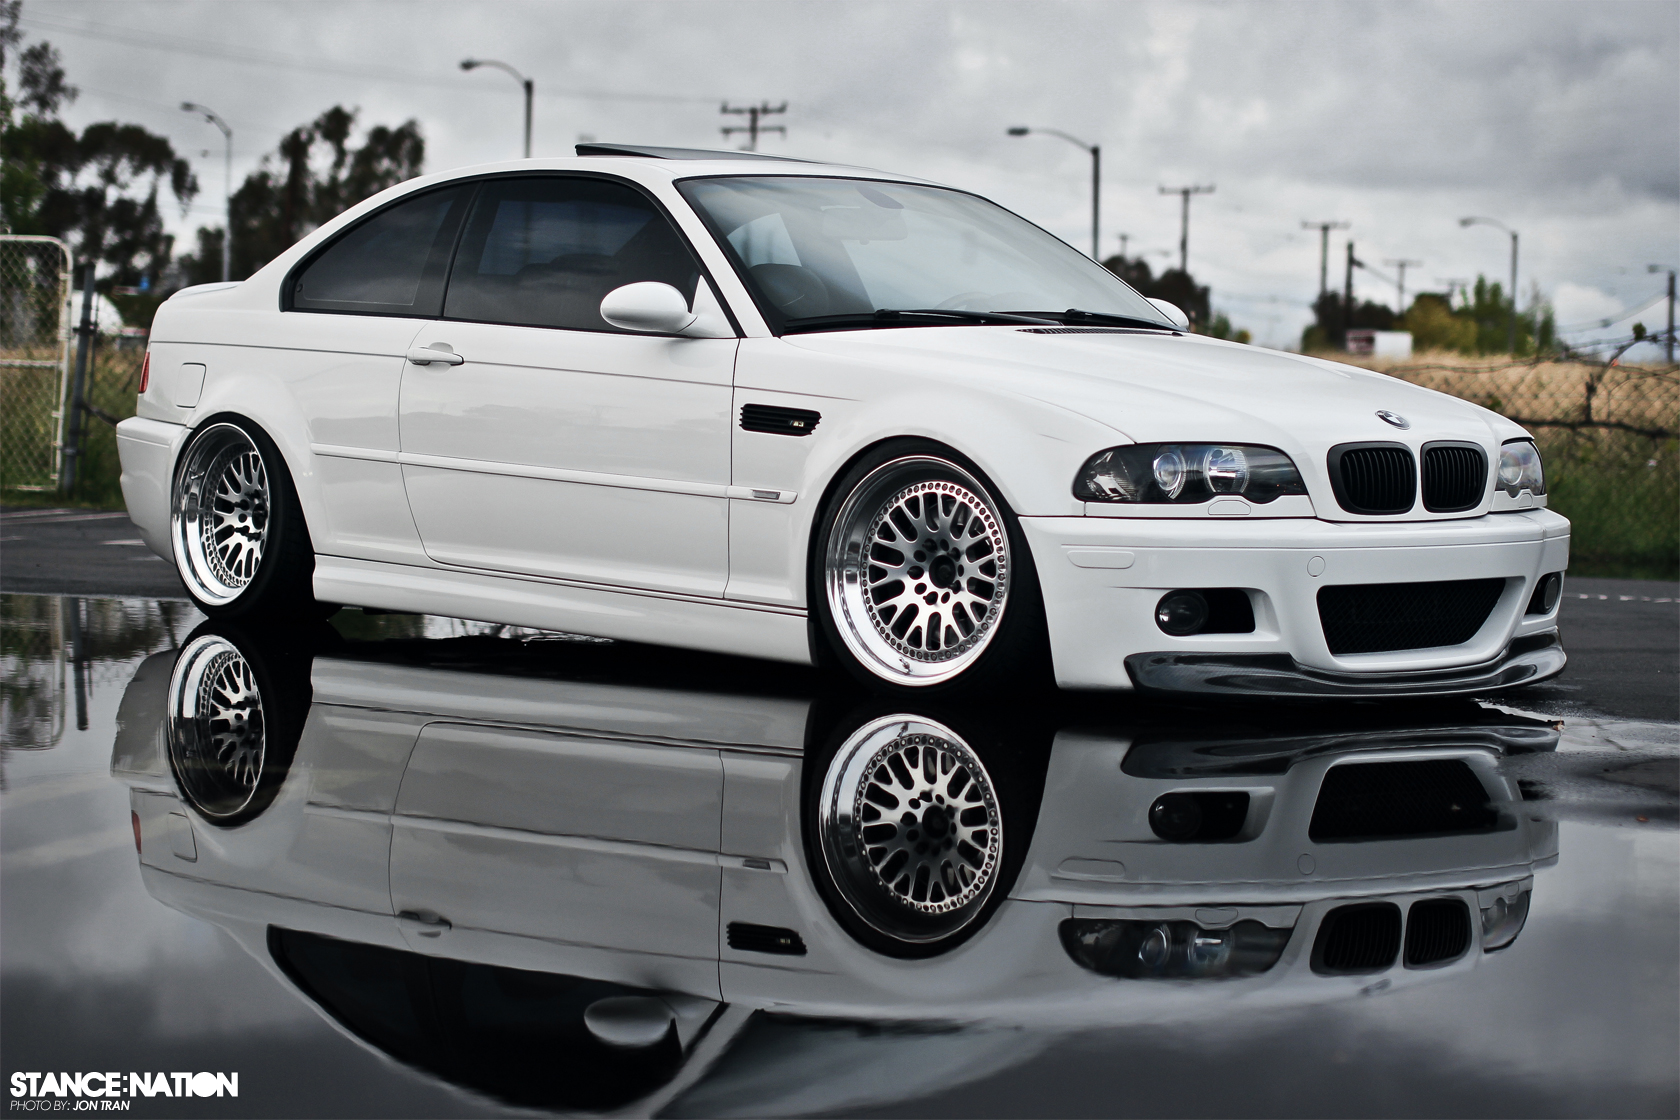 bmw e46 m3. Black Bedroom Furniture Sets. Home Design Ideas